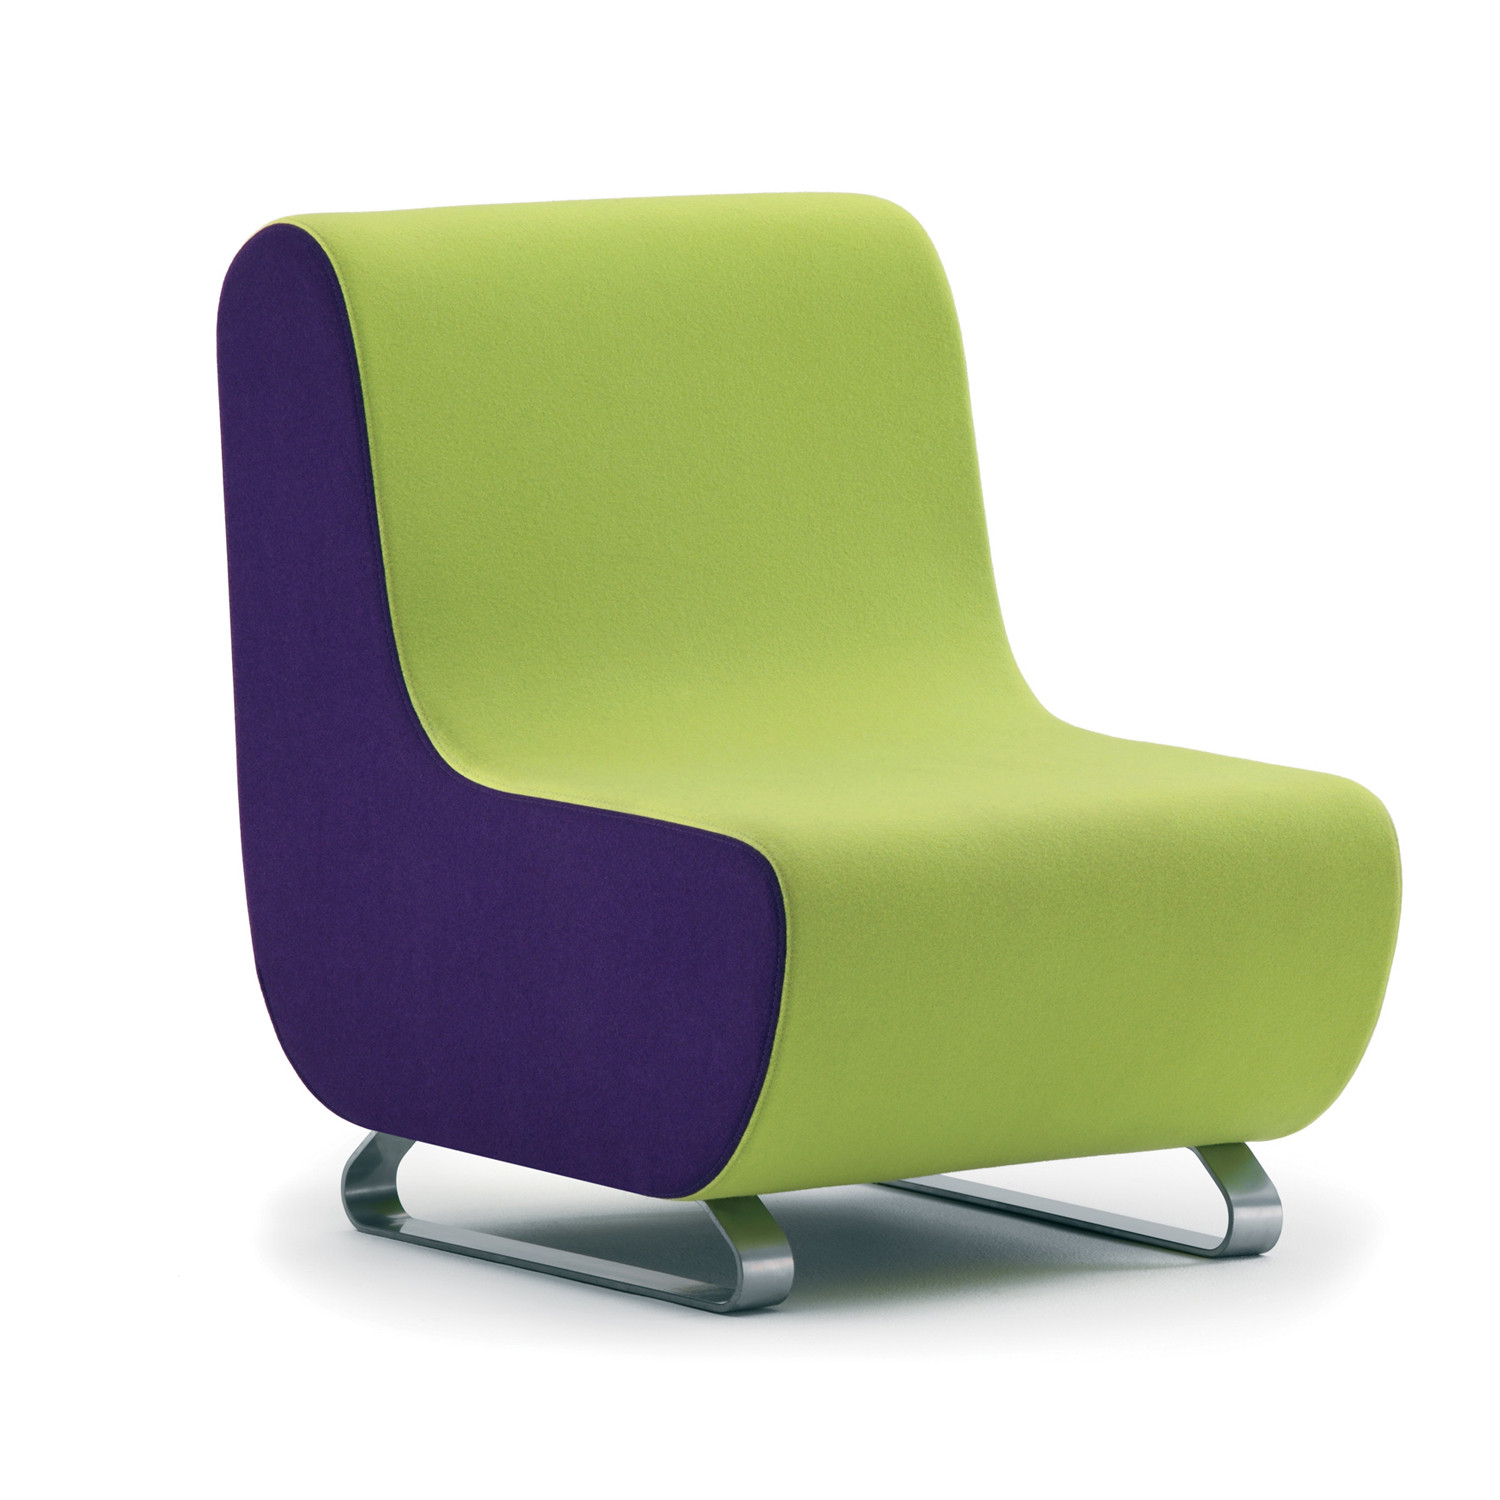 Parade Soft Seating by Edge